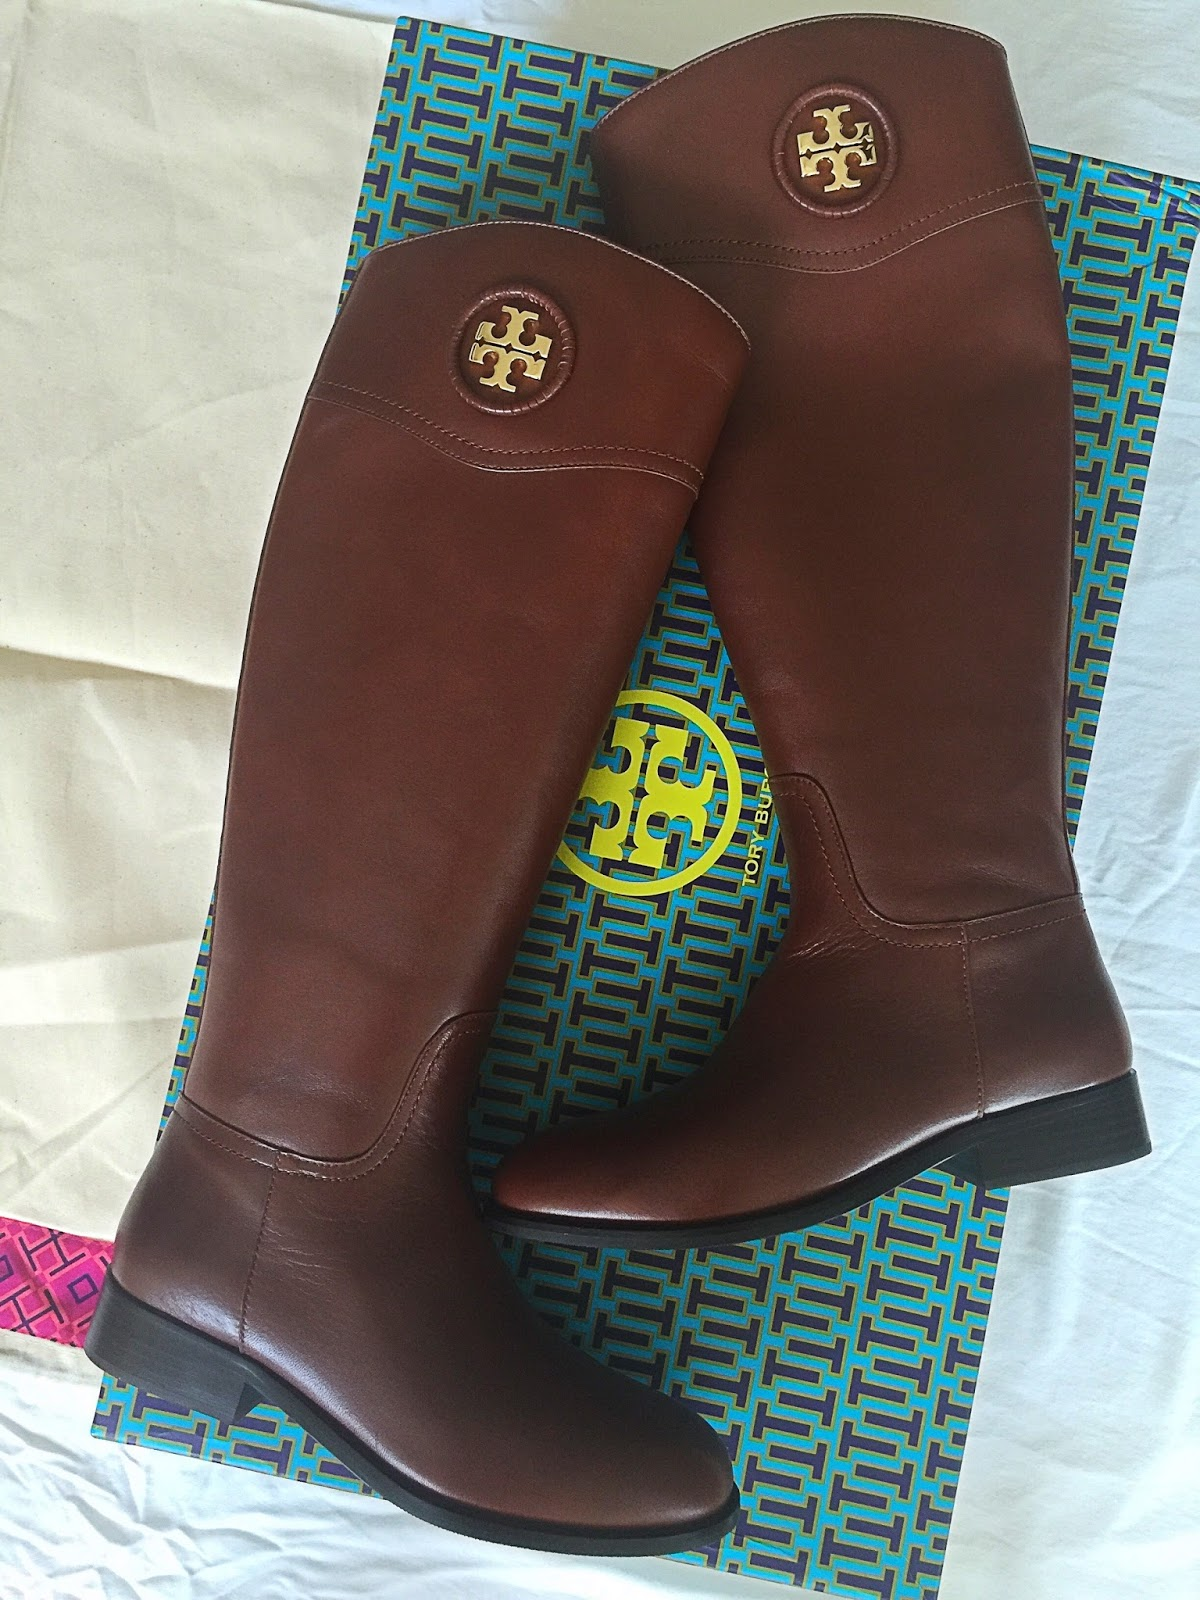 Something Delightful Blog: Tory Burch Riding Boots